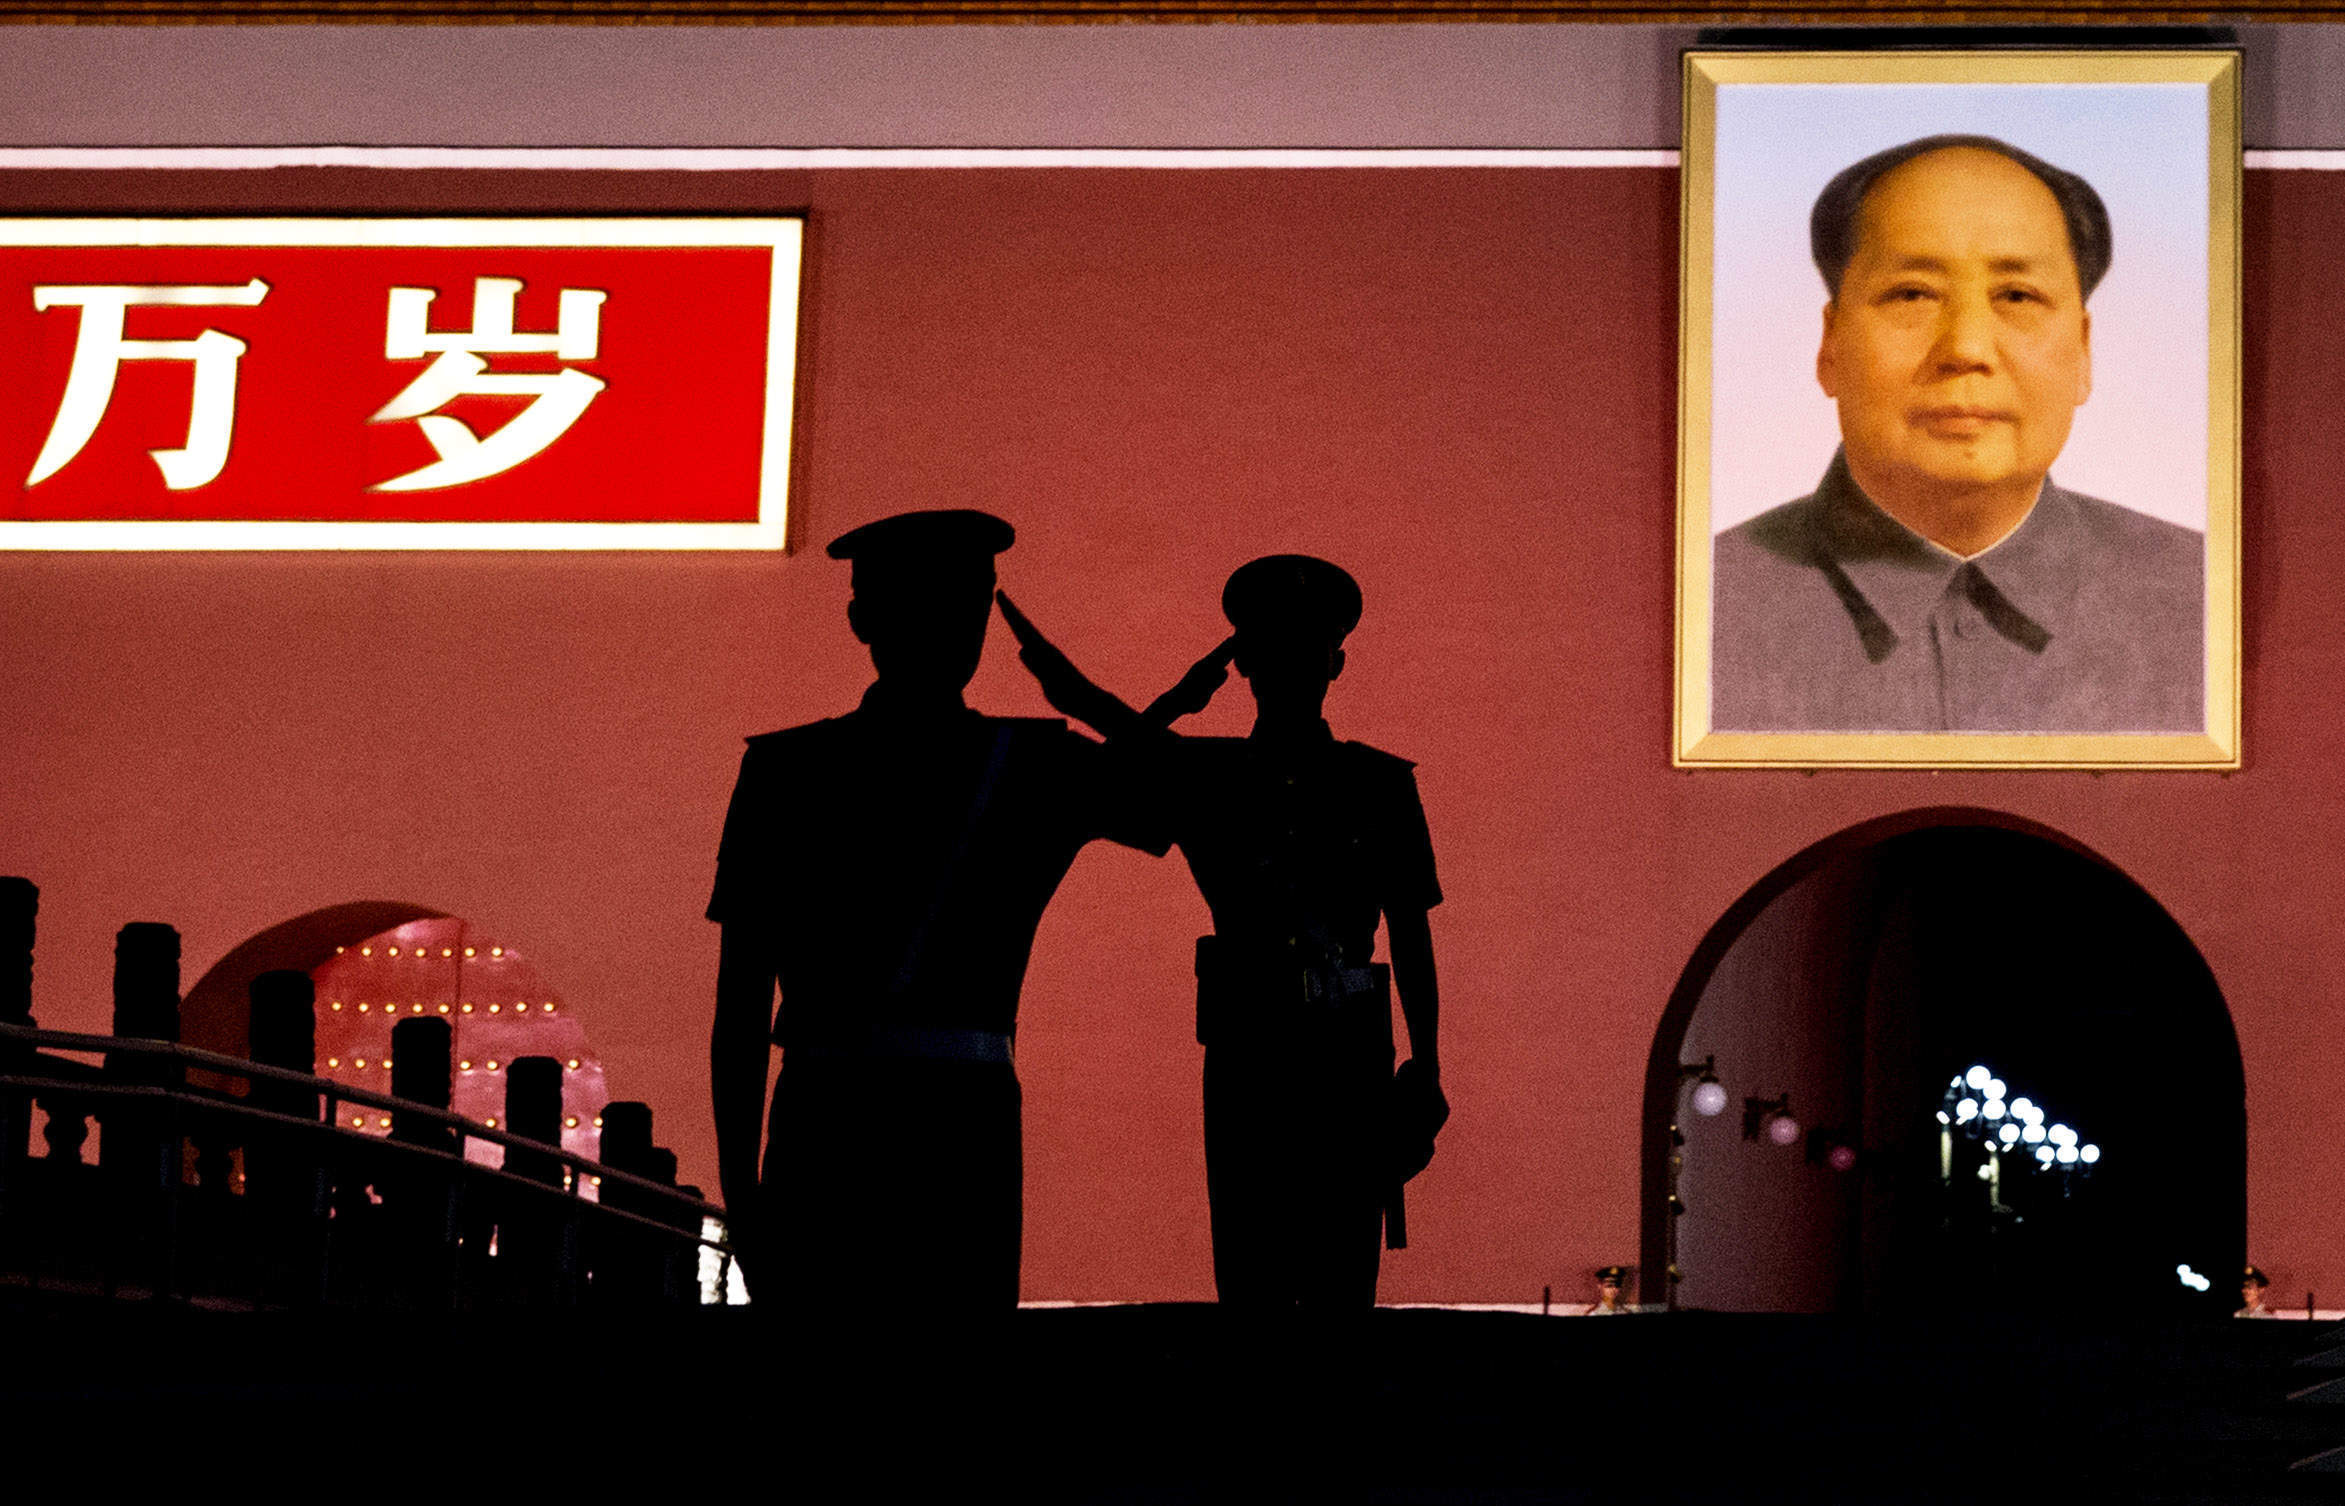 As we reach the 50th anniversary of China's Cultural Revolution, are we seeing echoes of Mao?